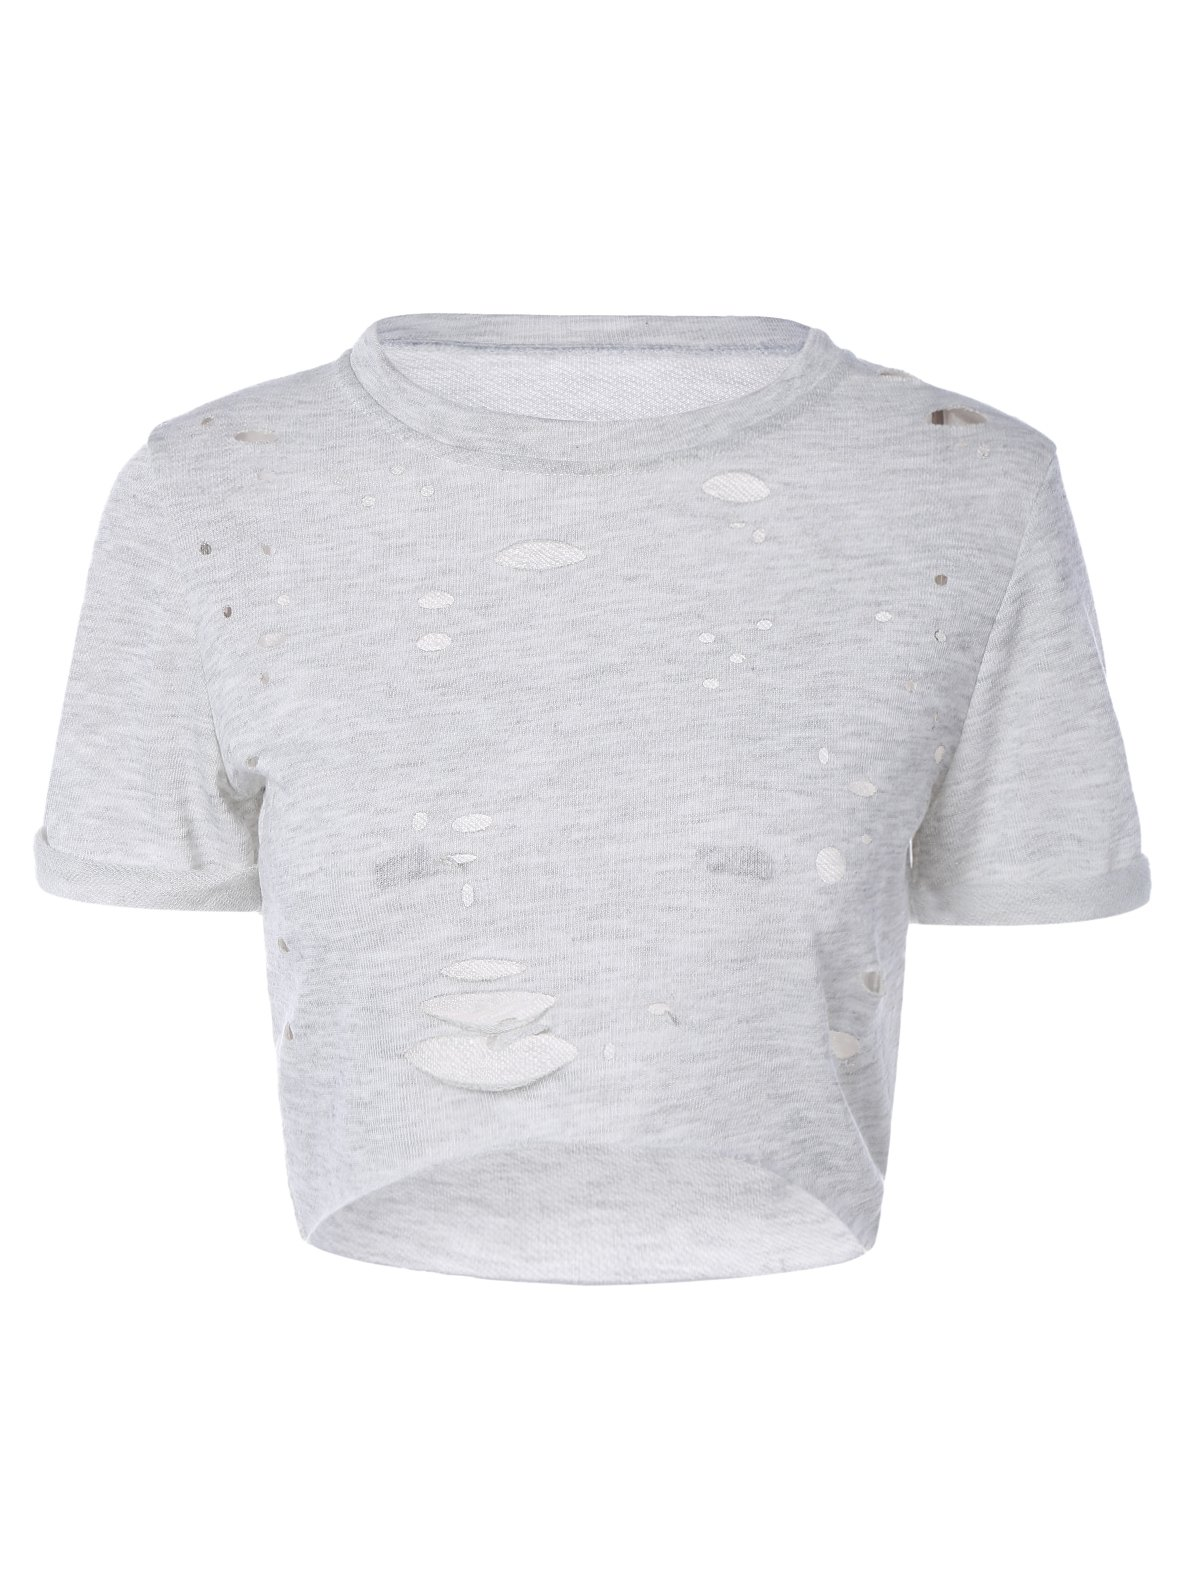 Ripped High-Low Cropped T-Shirt - GRAY M